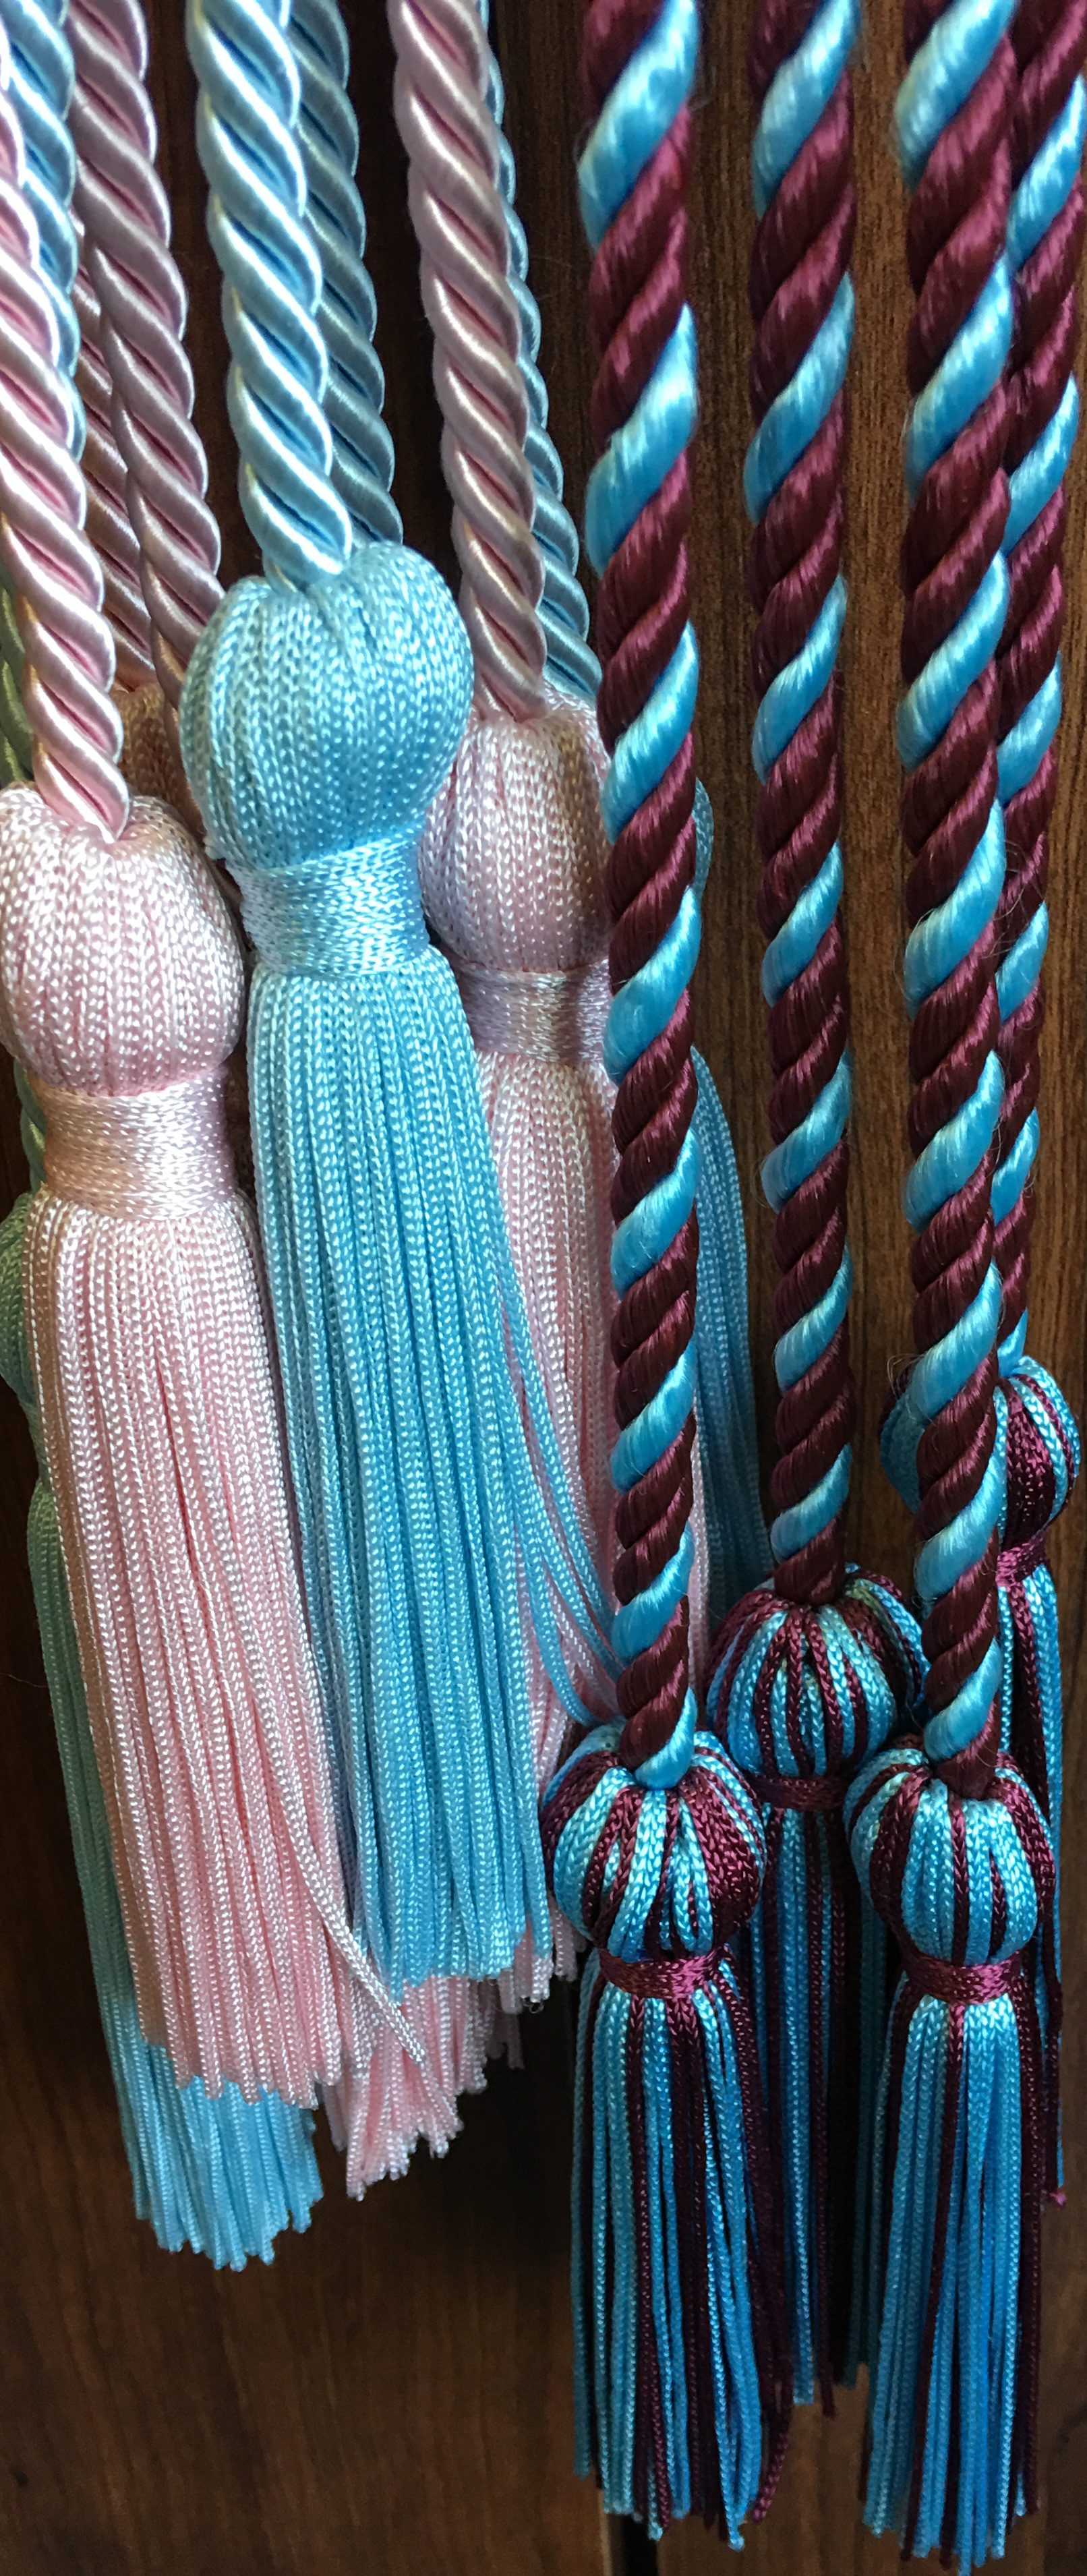 The tradition of wearing GLO stoles and cords has caught on in the last few decades. The cords are usually intertwined lengths of cording in the GLO's colors. Some of the stoles are simple with just the Greek letters. Others have chapter names and the graduate's name embroidered on it.